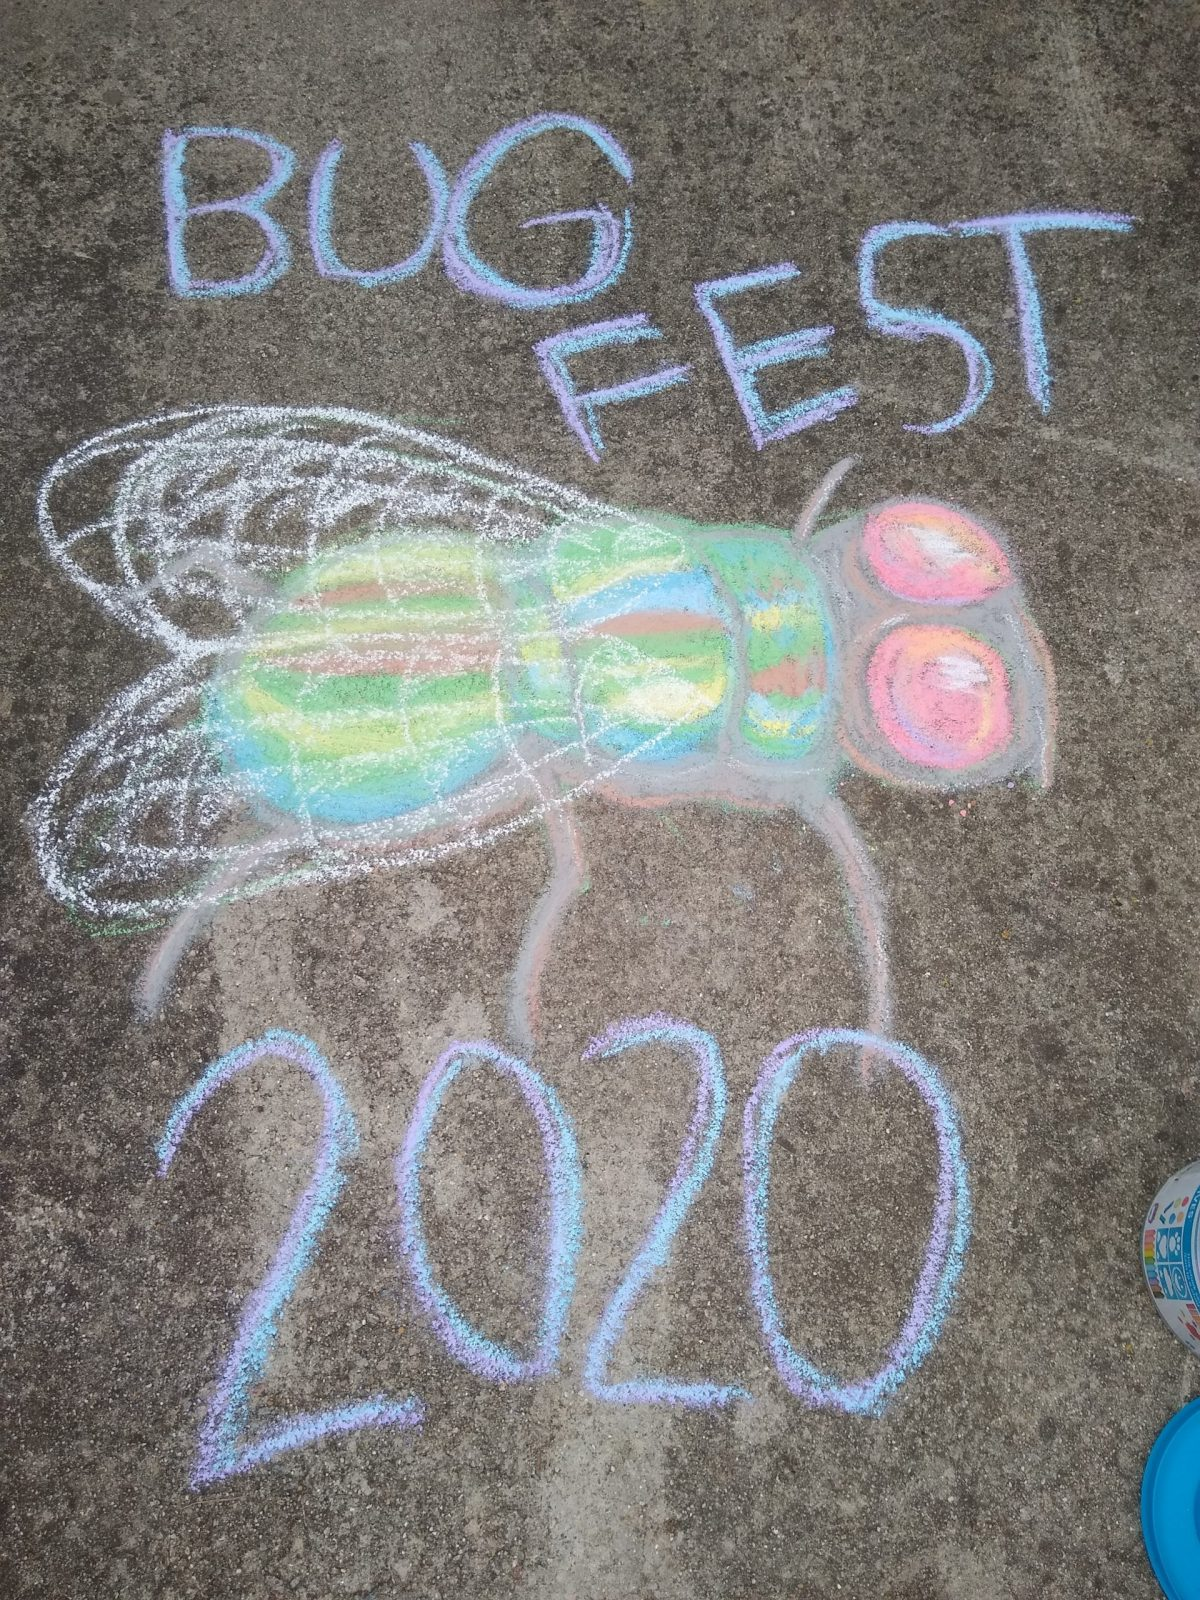 Bugfest and a colorful chalk fly